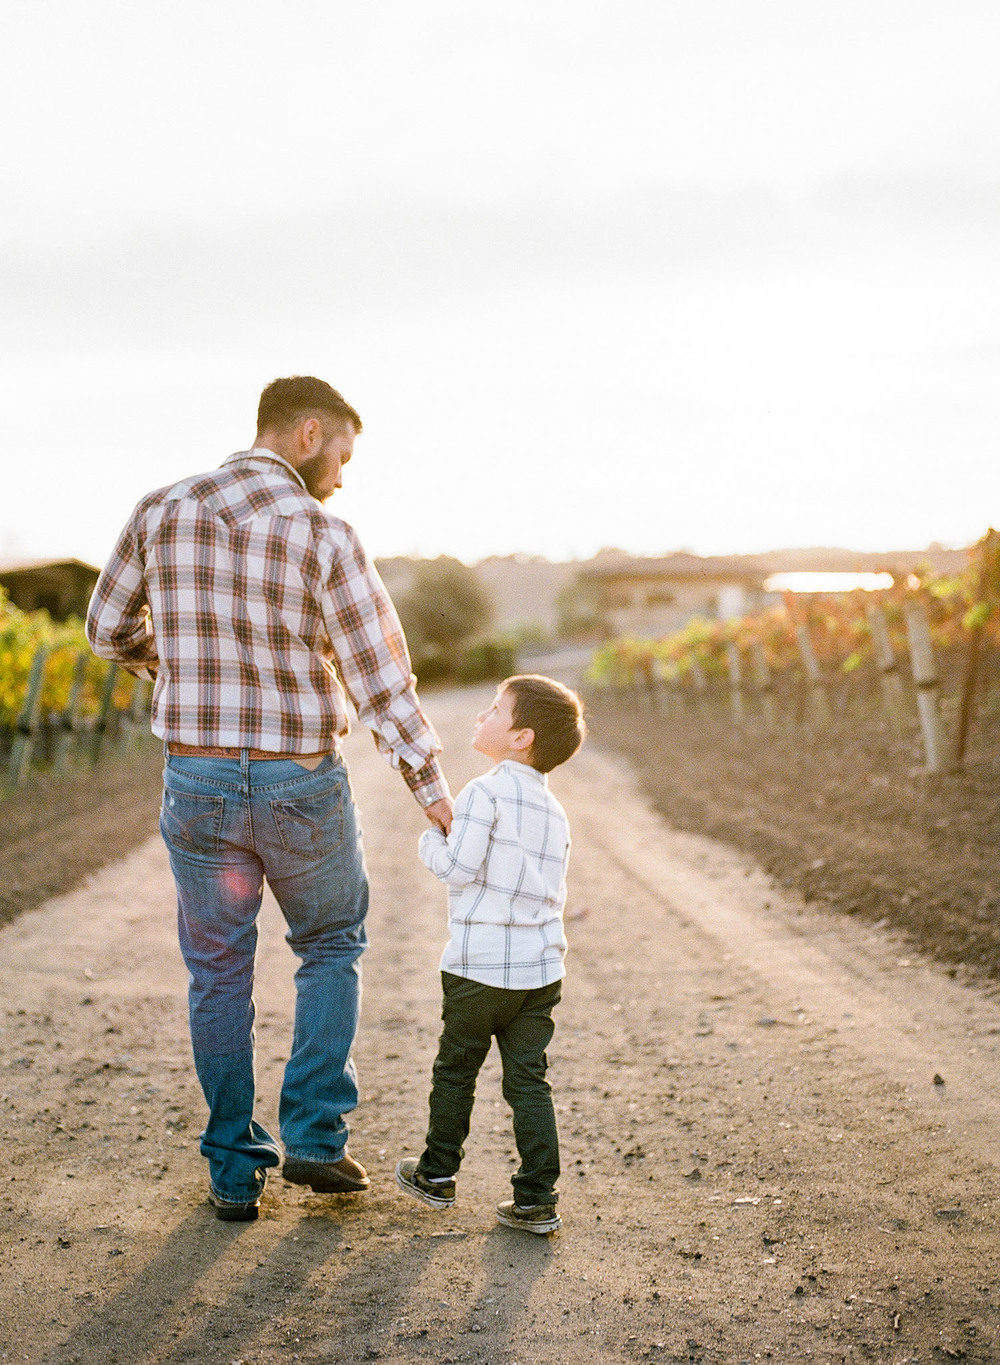 A father and son walking hand in hand down a dirt road, with the sun setting beyond them in this family photography session by Twinkle Star Photography, an Arroyo Grande child photographer.